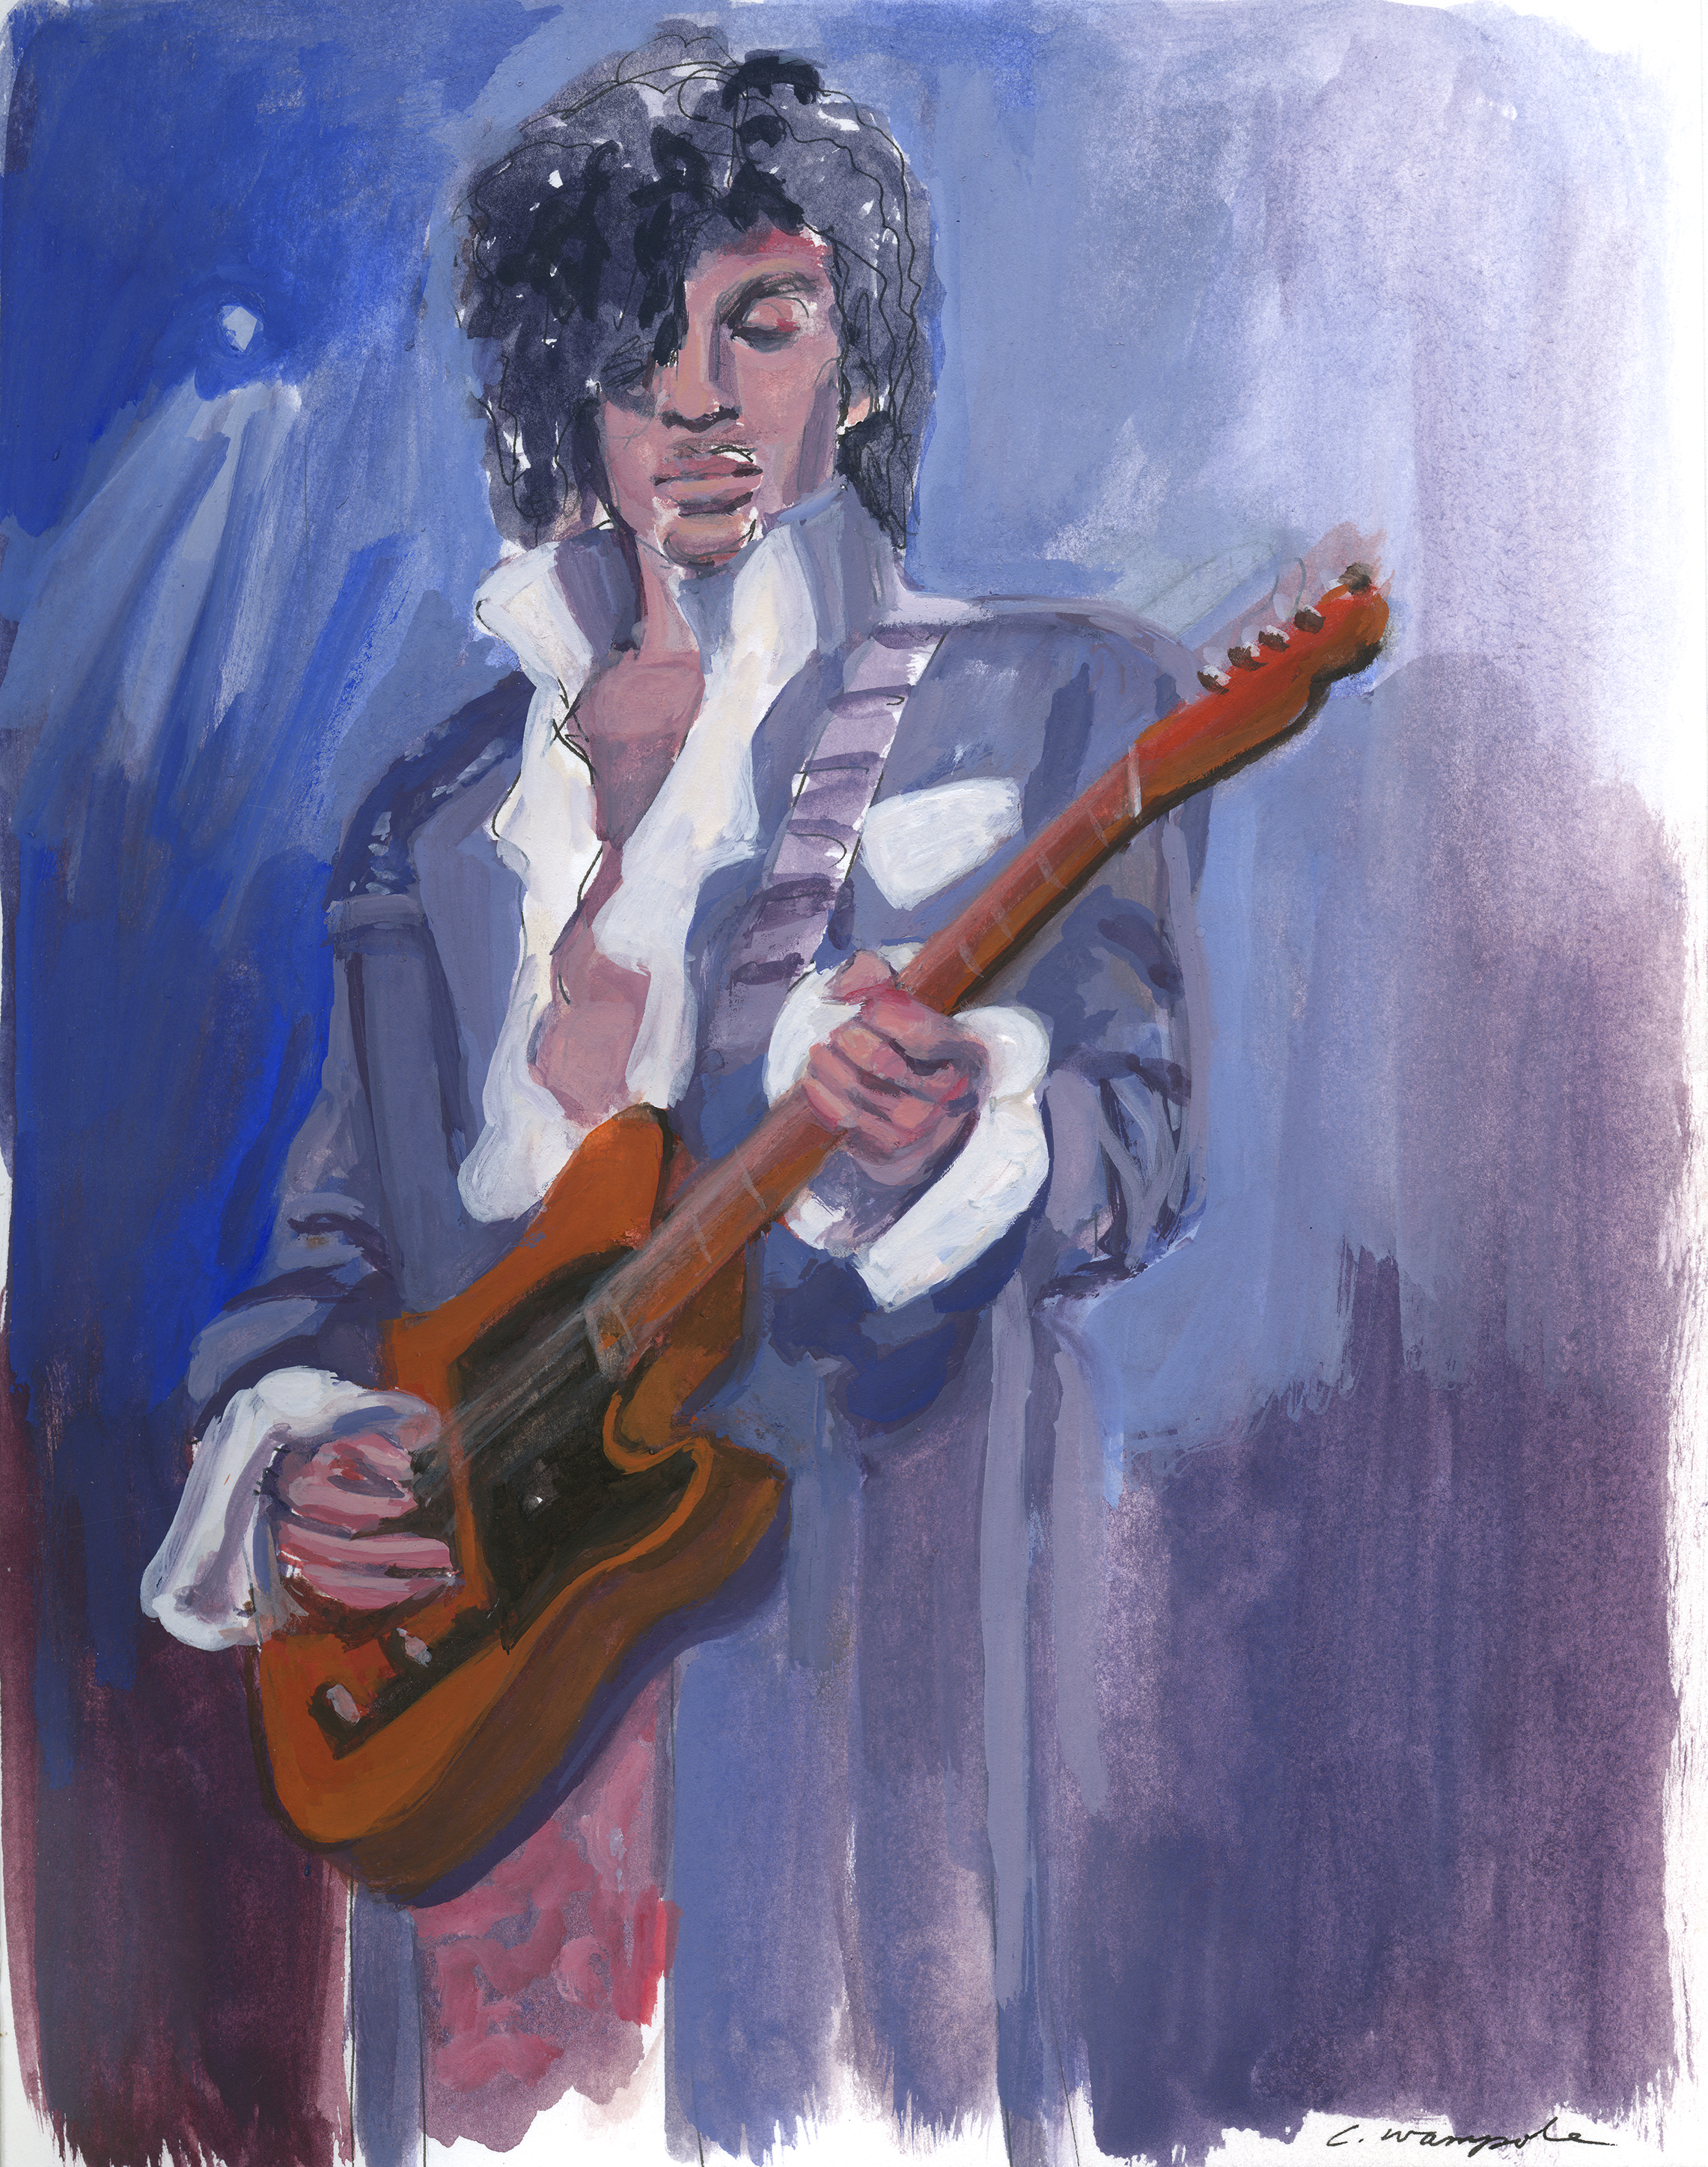 PRINCE (2016). Gouache on paper, 8 x 10 inches